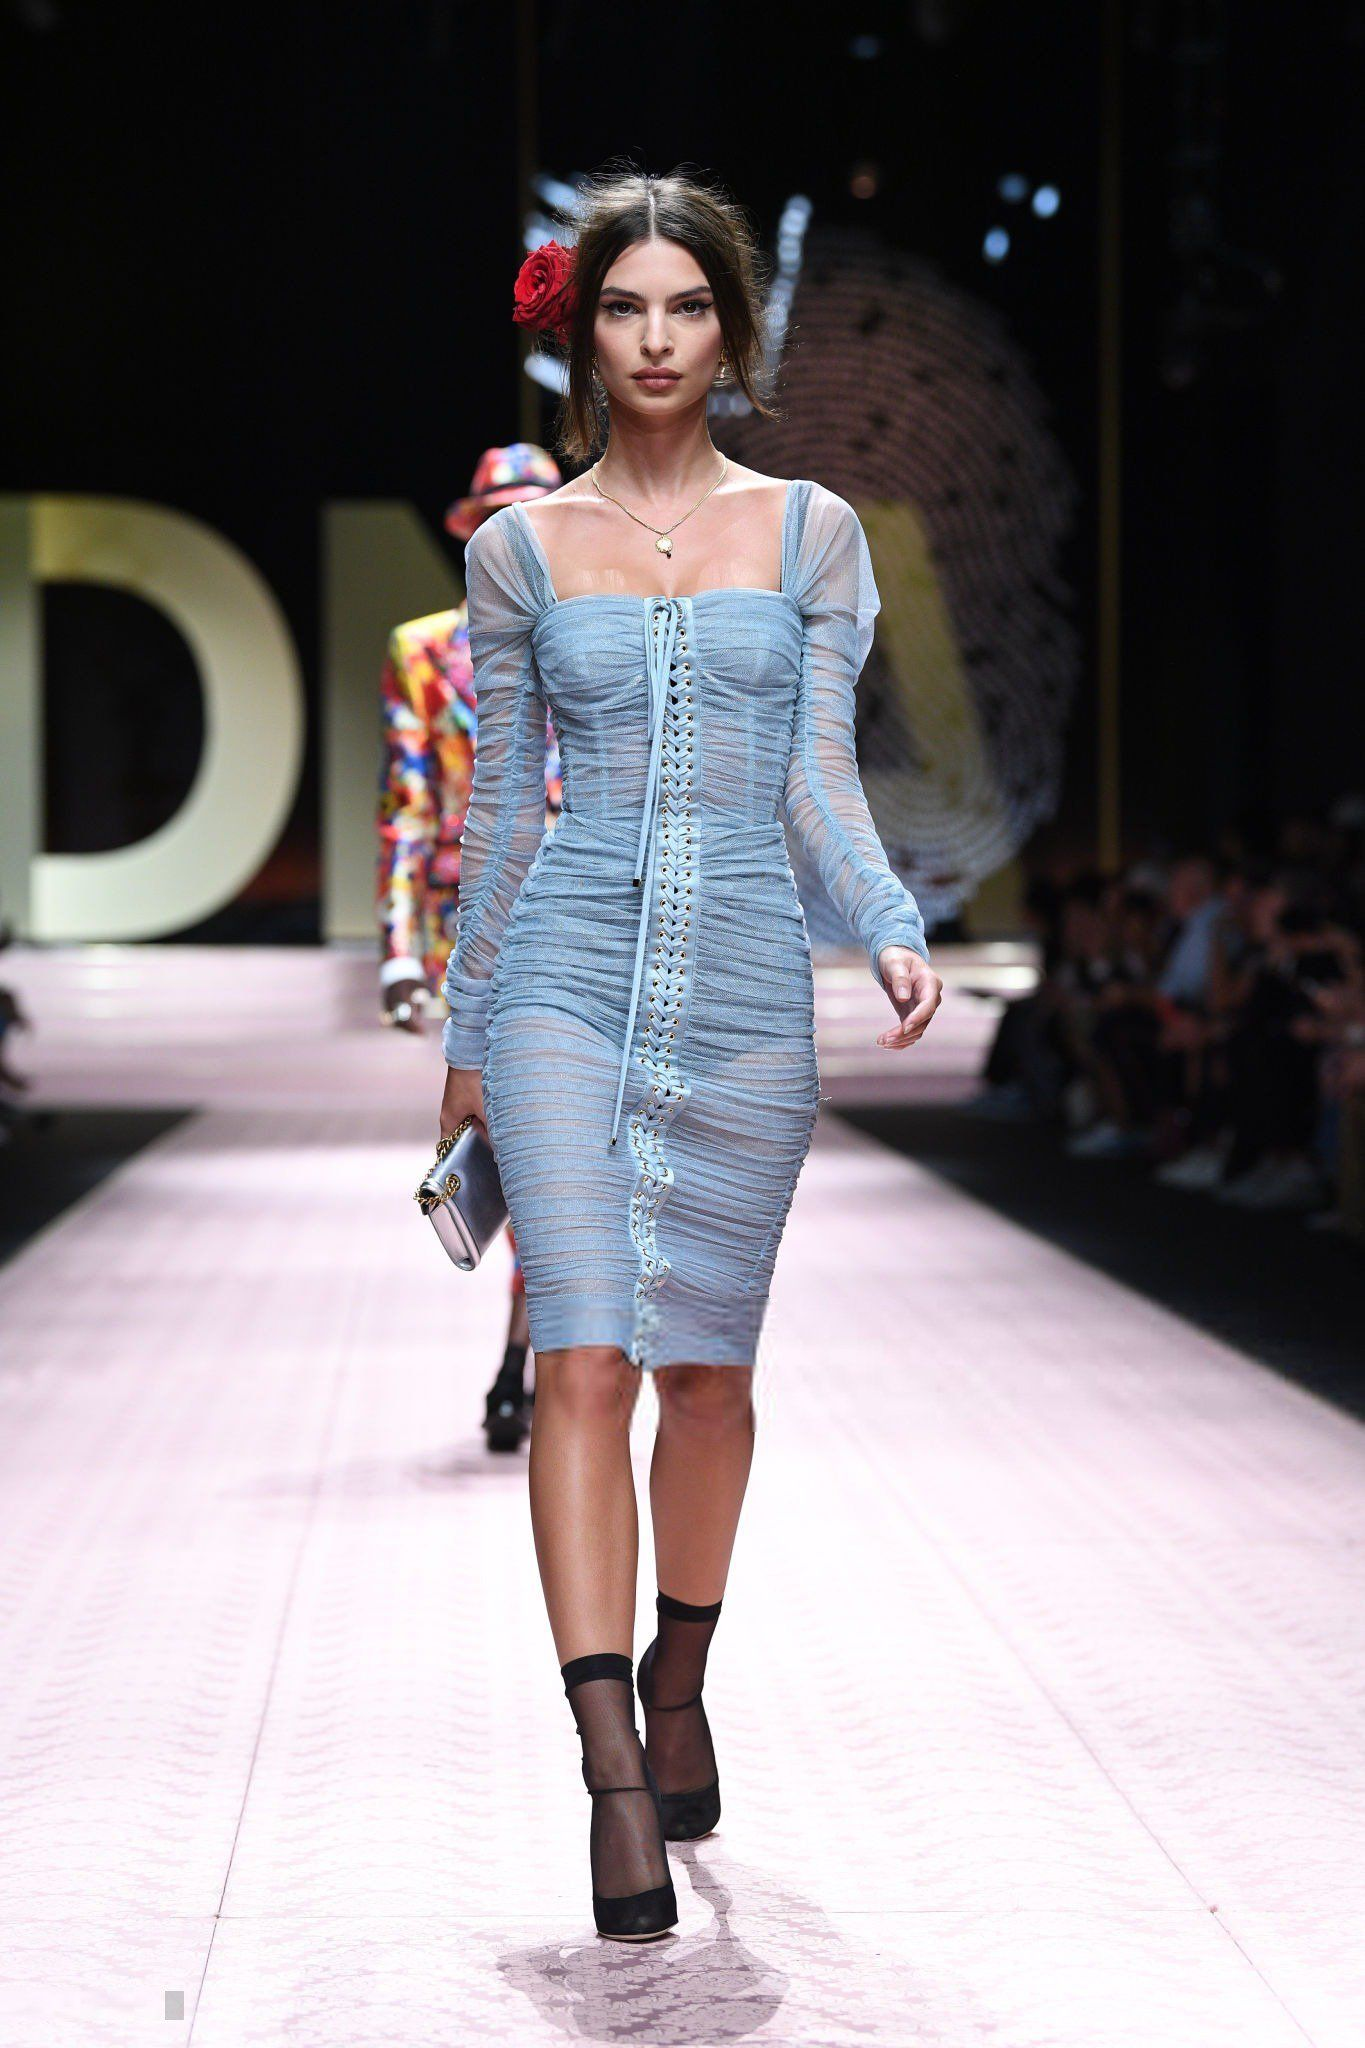 f52fc6db Emily Ratajkowski in baby blue dress on the runway for Dolce & Gabanna.